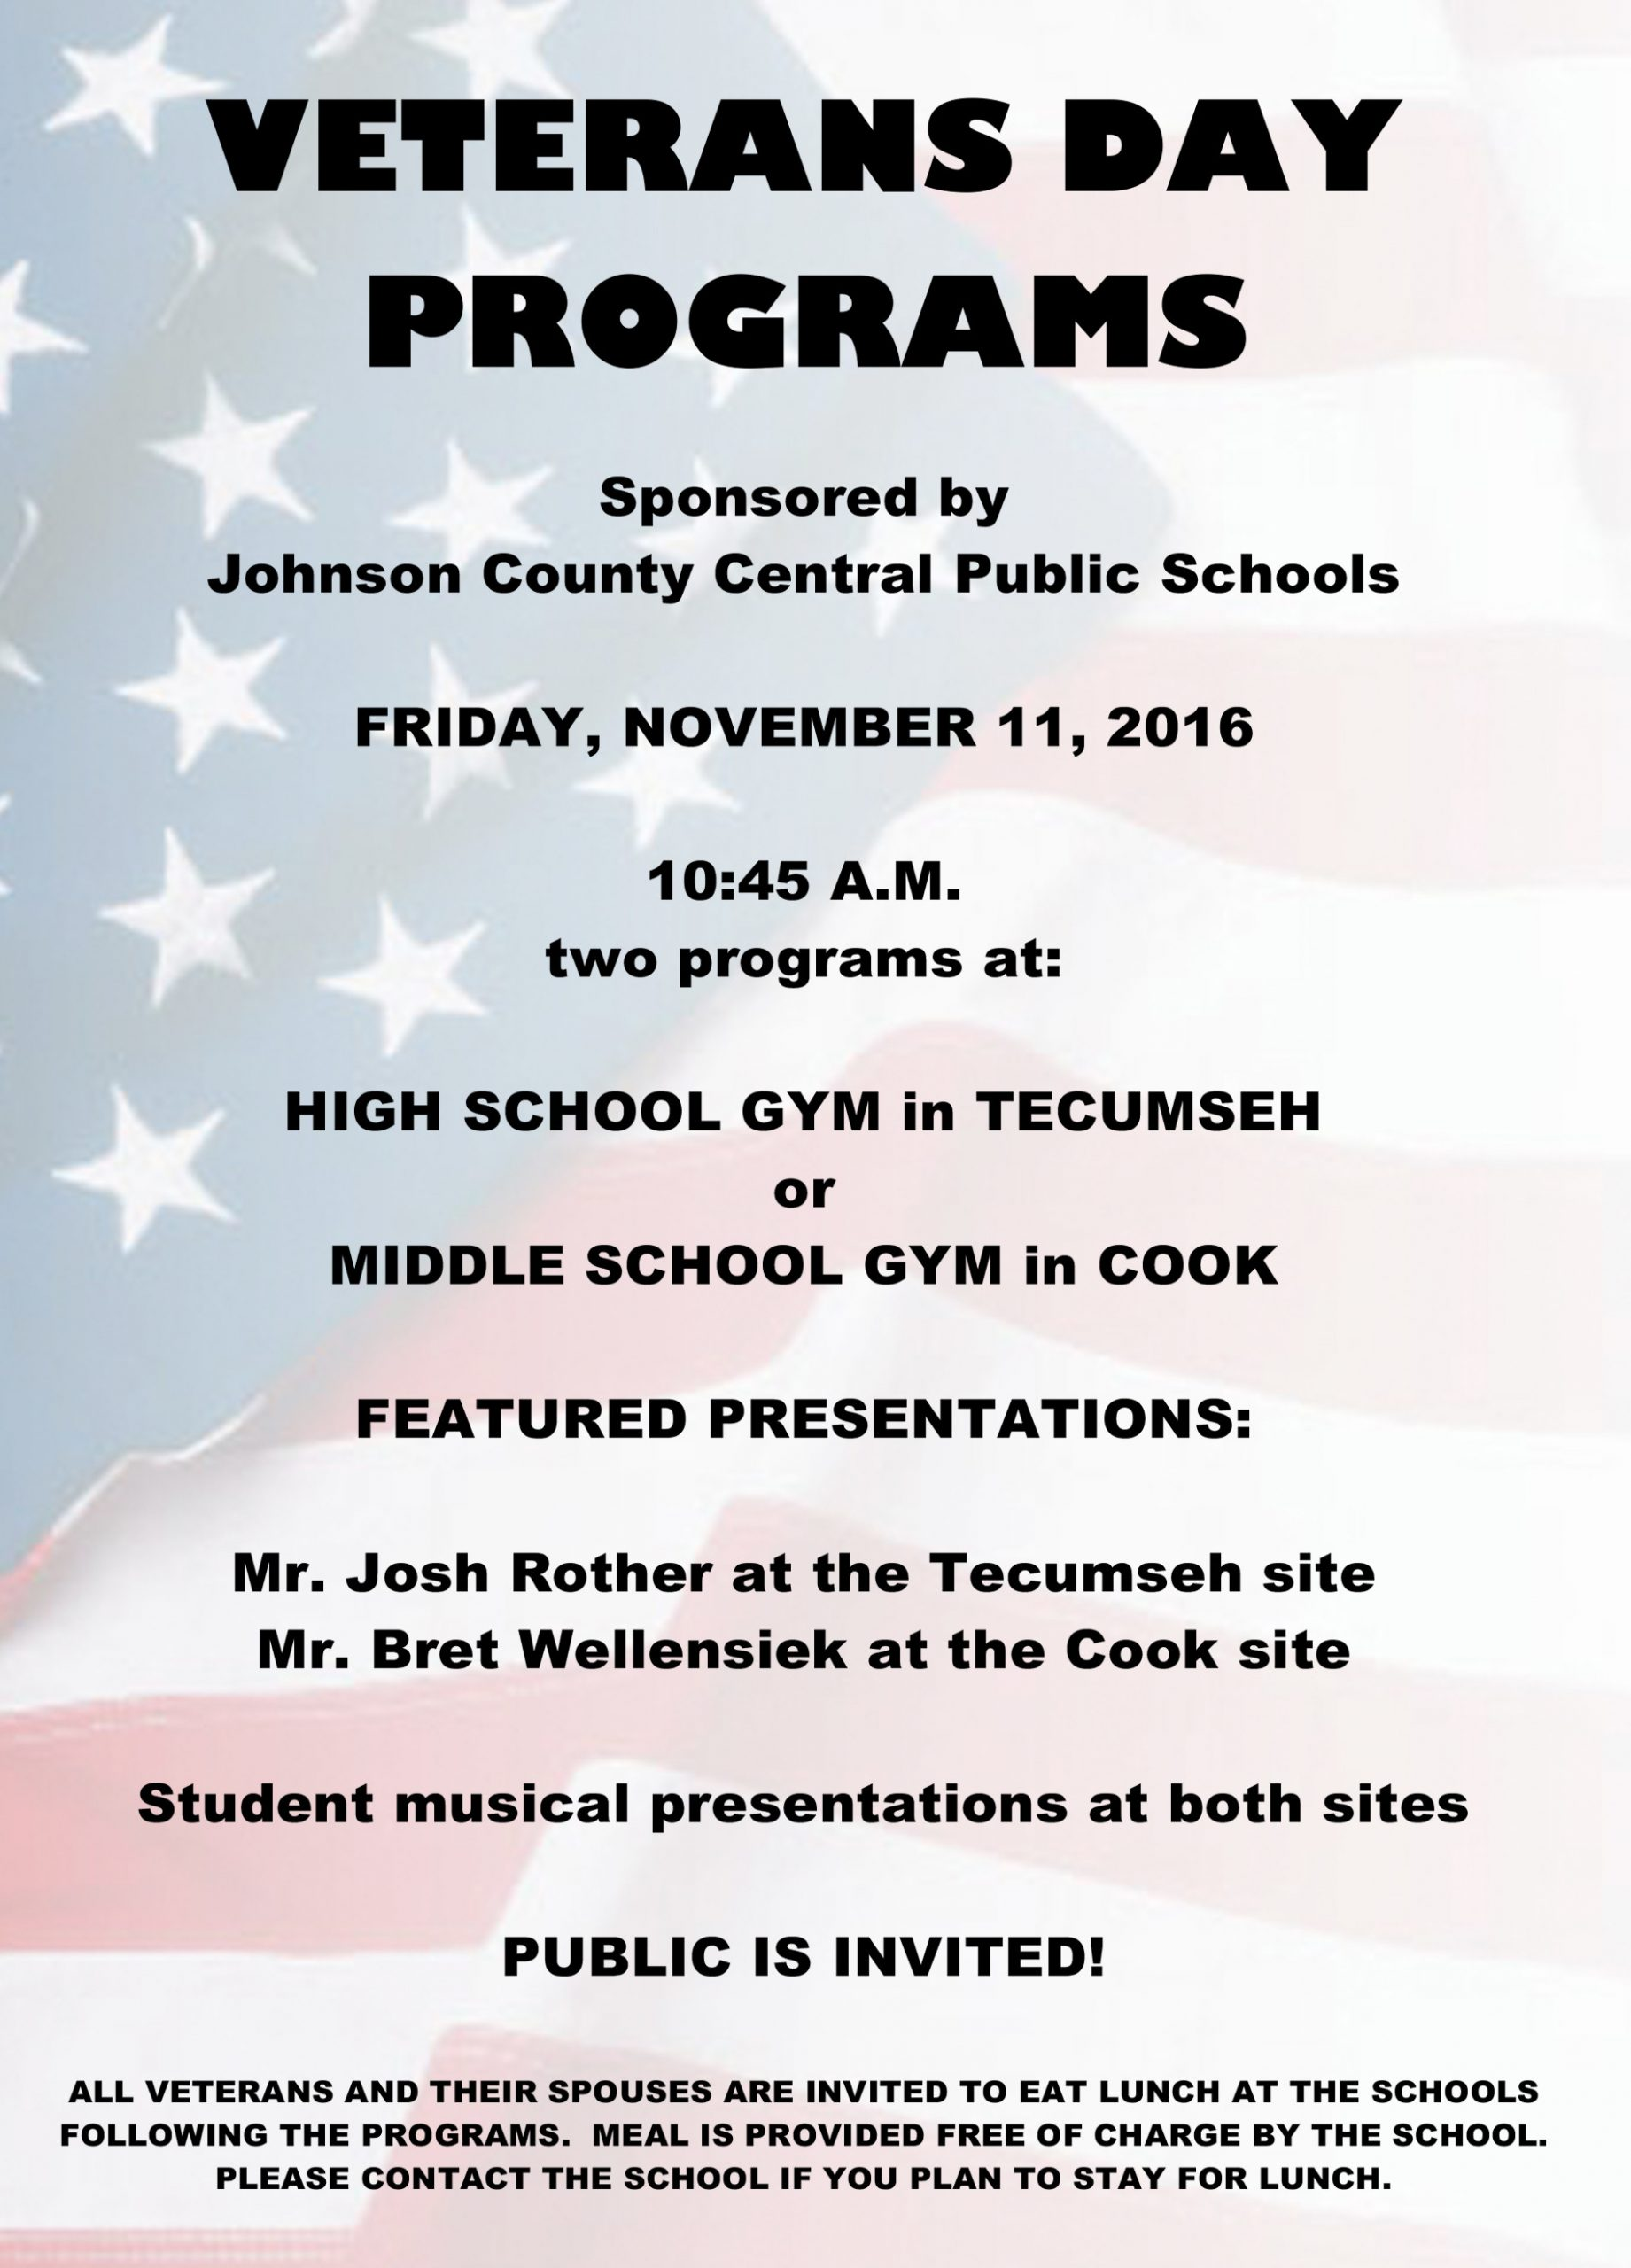 Johnson County Central Veterans Day Programs